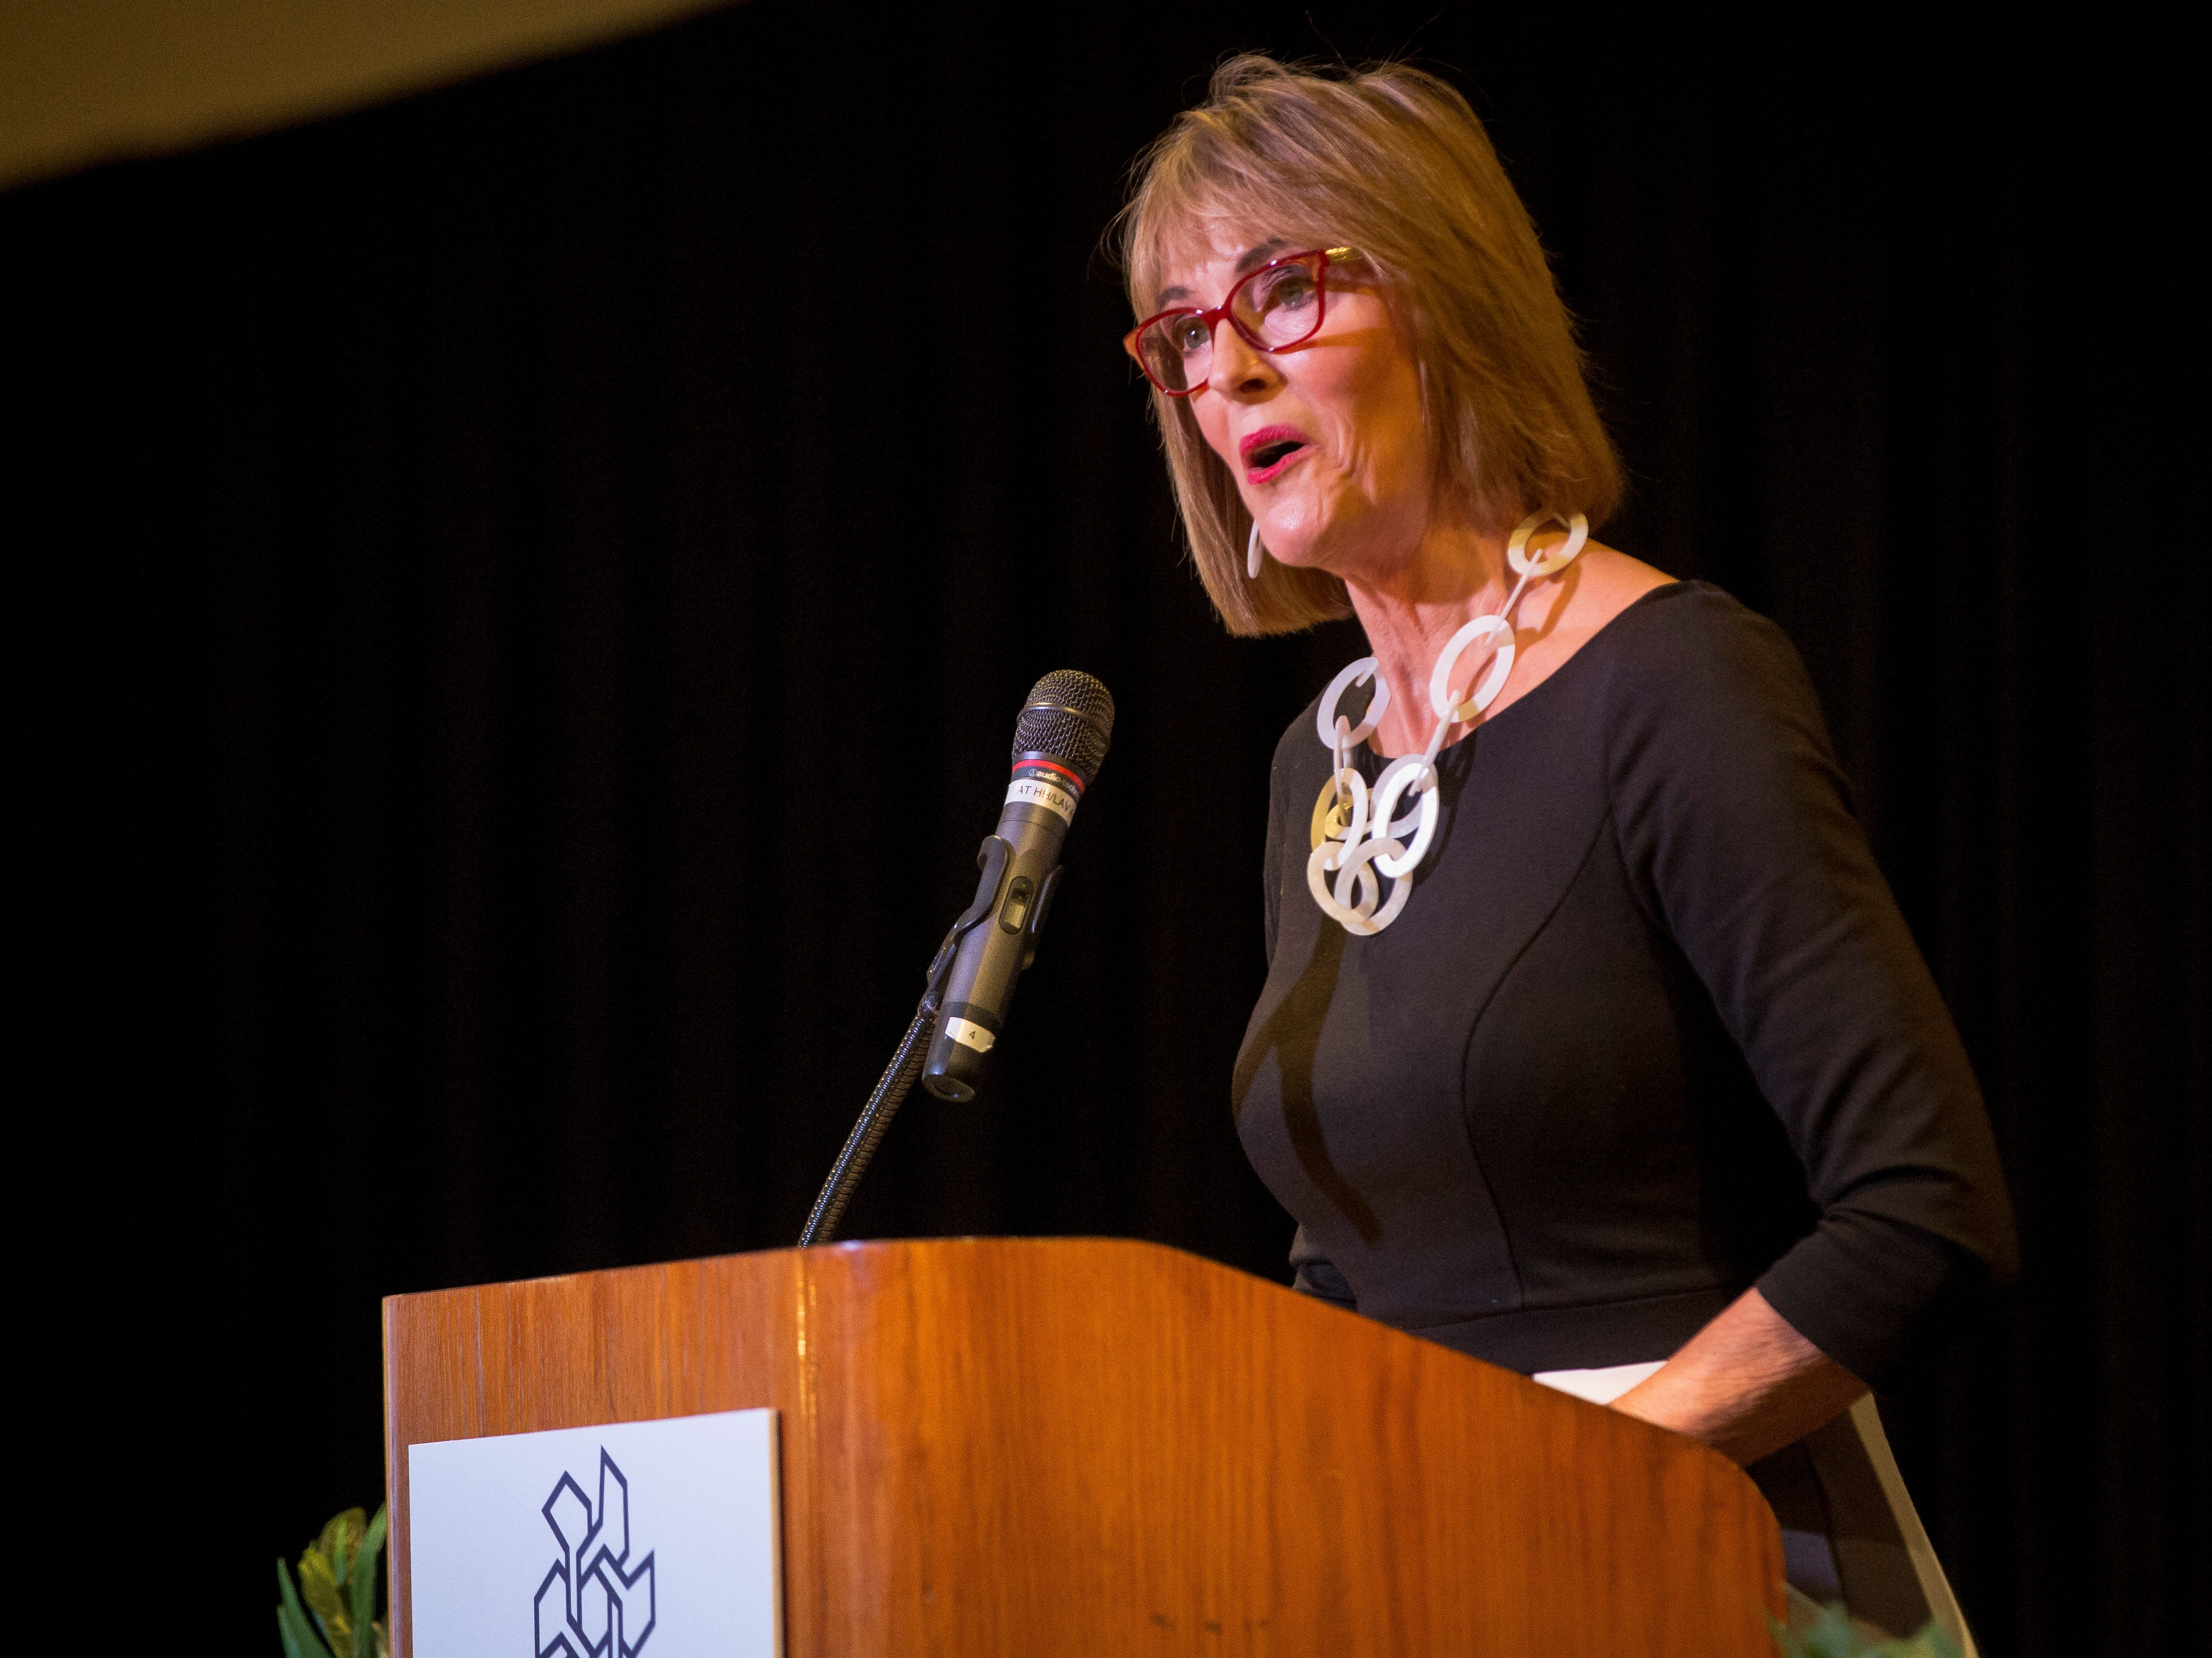 Lt. Gov. Suzanne Crouch touts broadband expansion to rural counties